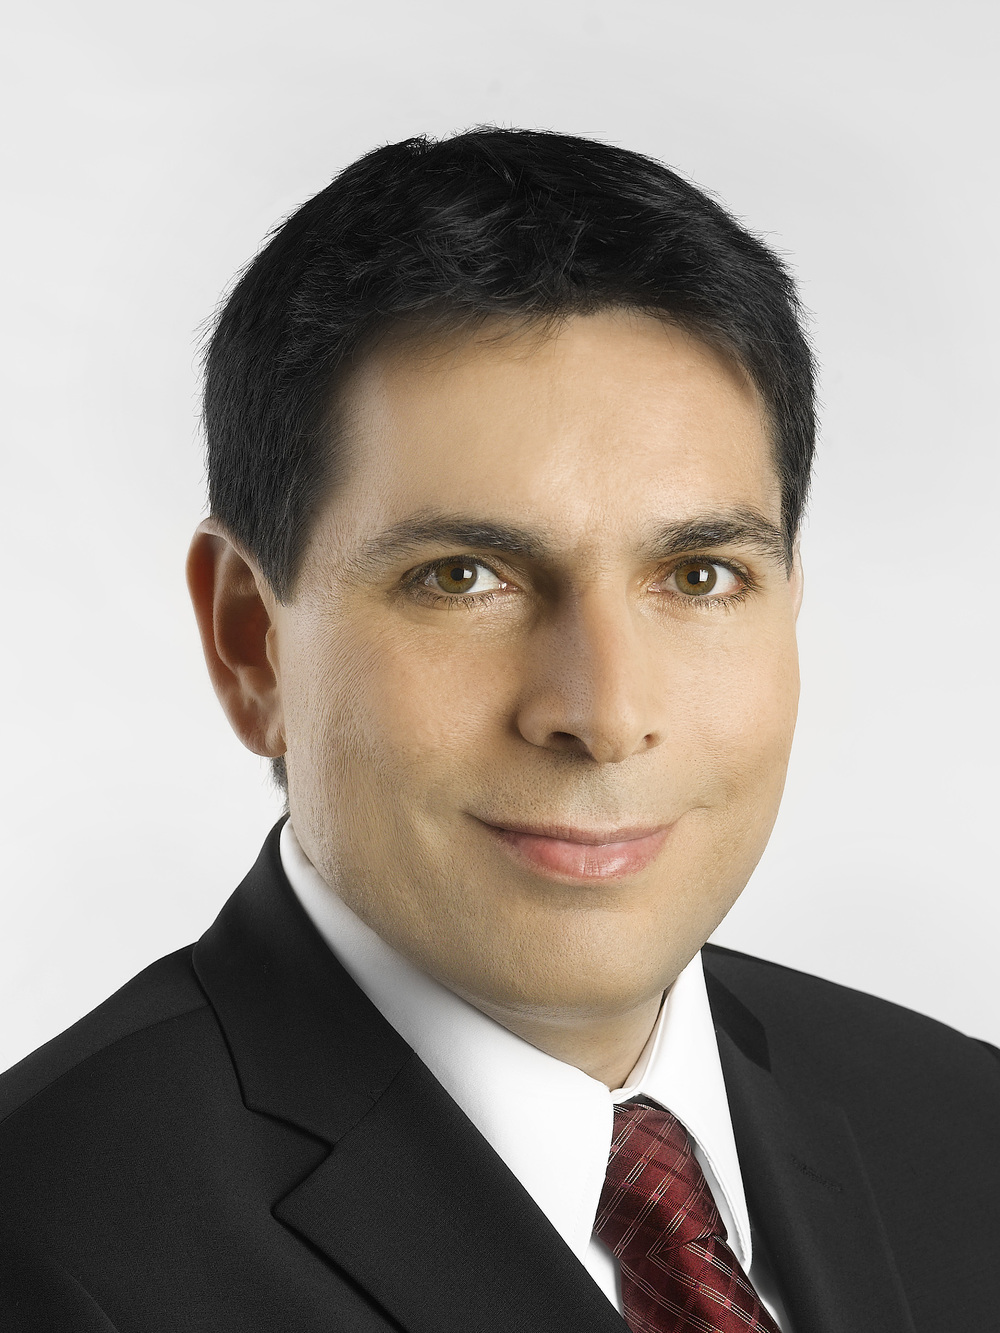 Click photo to download. Caption: Israeli Deputy Defense Minister MK Danny Danon, pictured, is a leading advocate of Christian recruitment into the Israel Defense Forces. Credit: Darko via Wikimedia Commons.